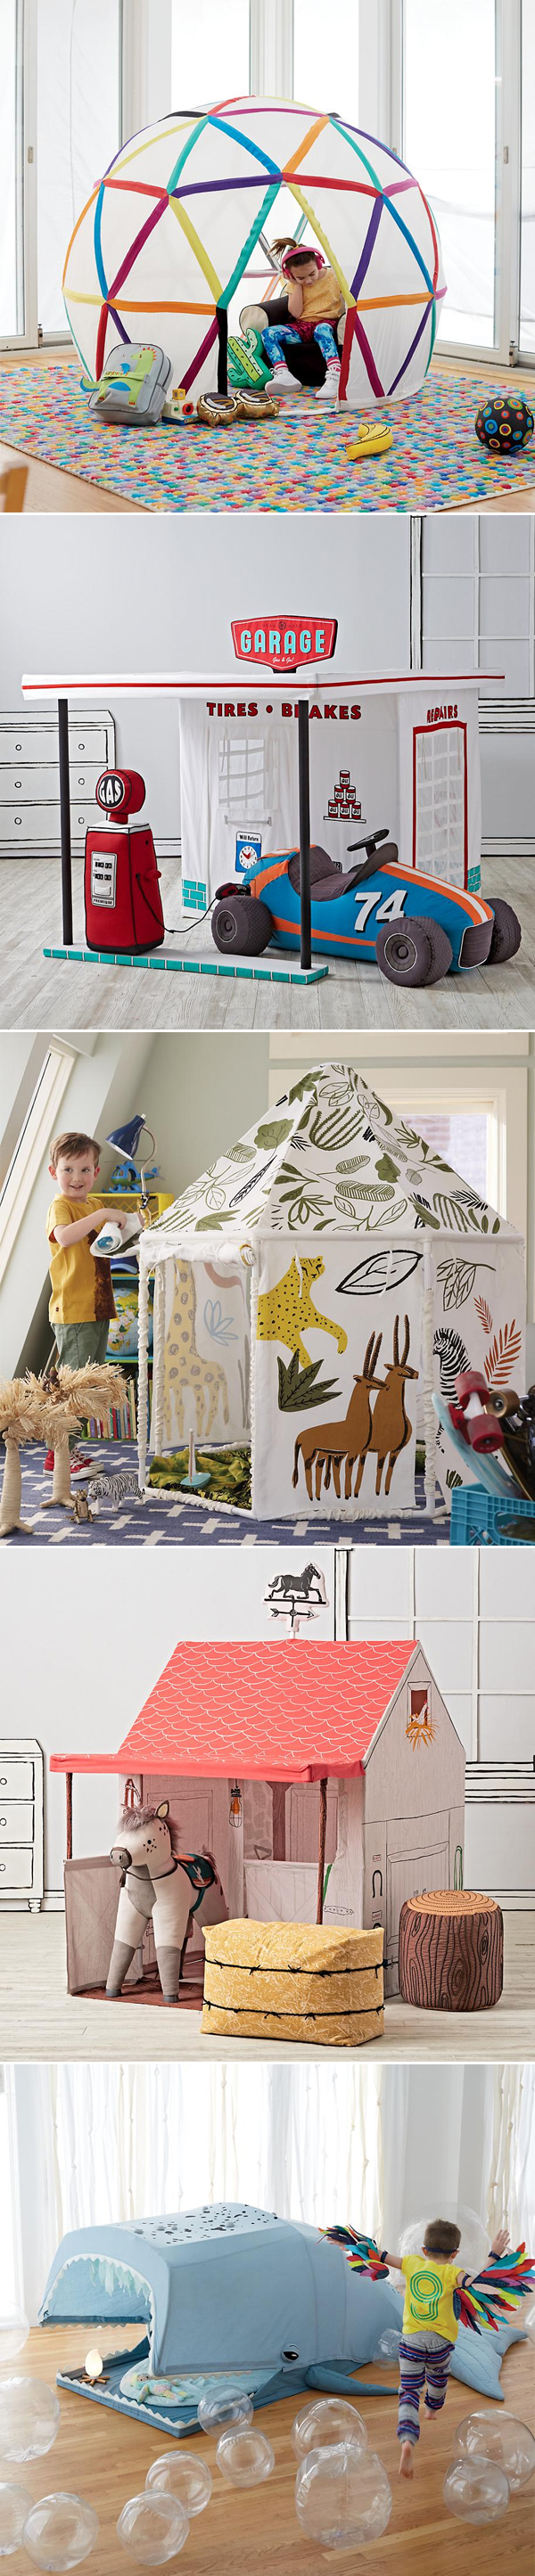 The Land of Nod Playhouses | Não Me Mande Flores